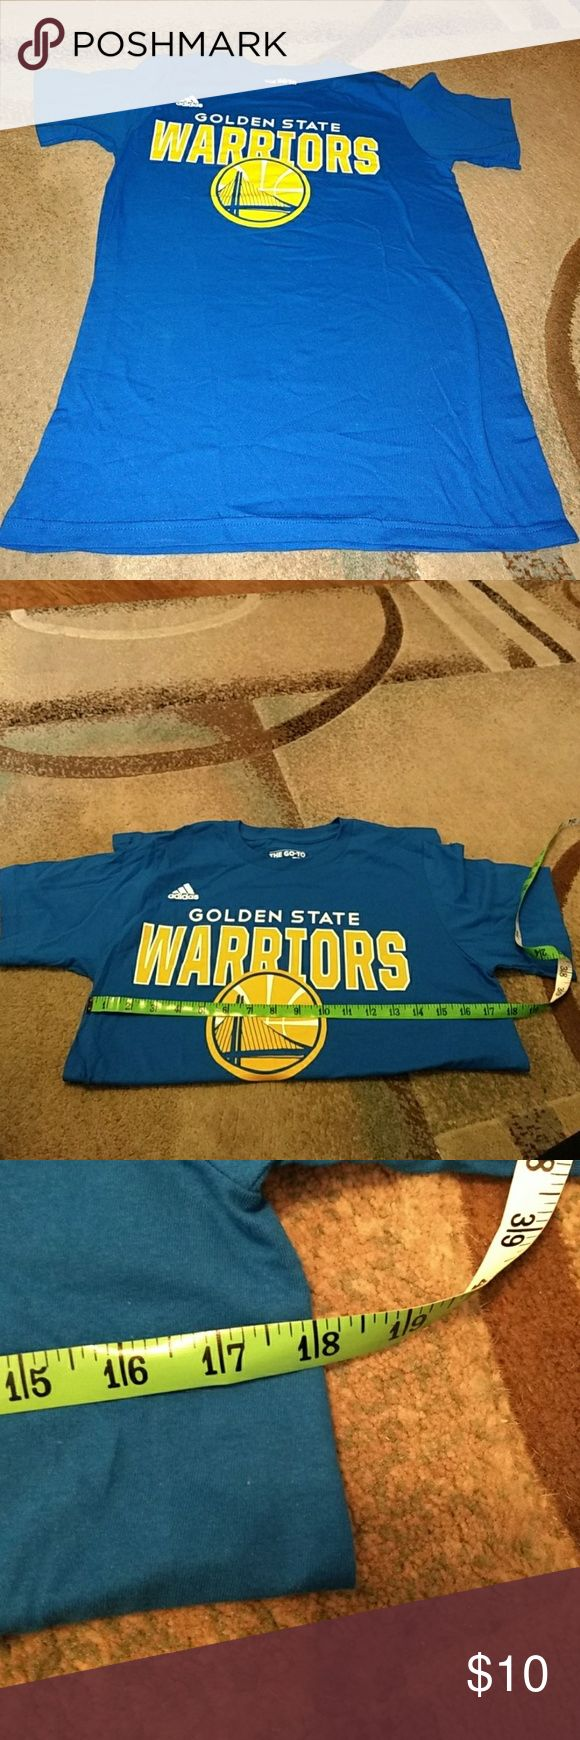 Adidas Golden State Warriors T-shirt, S You are purchasing a Adidas  Golden State Warriors T-shirt, small. Adidas Shirts Tees - Short Sleeve